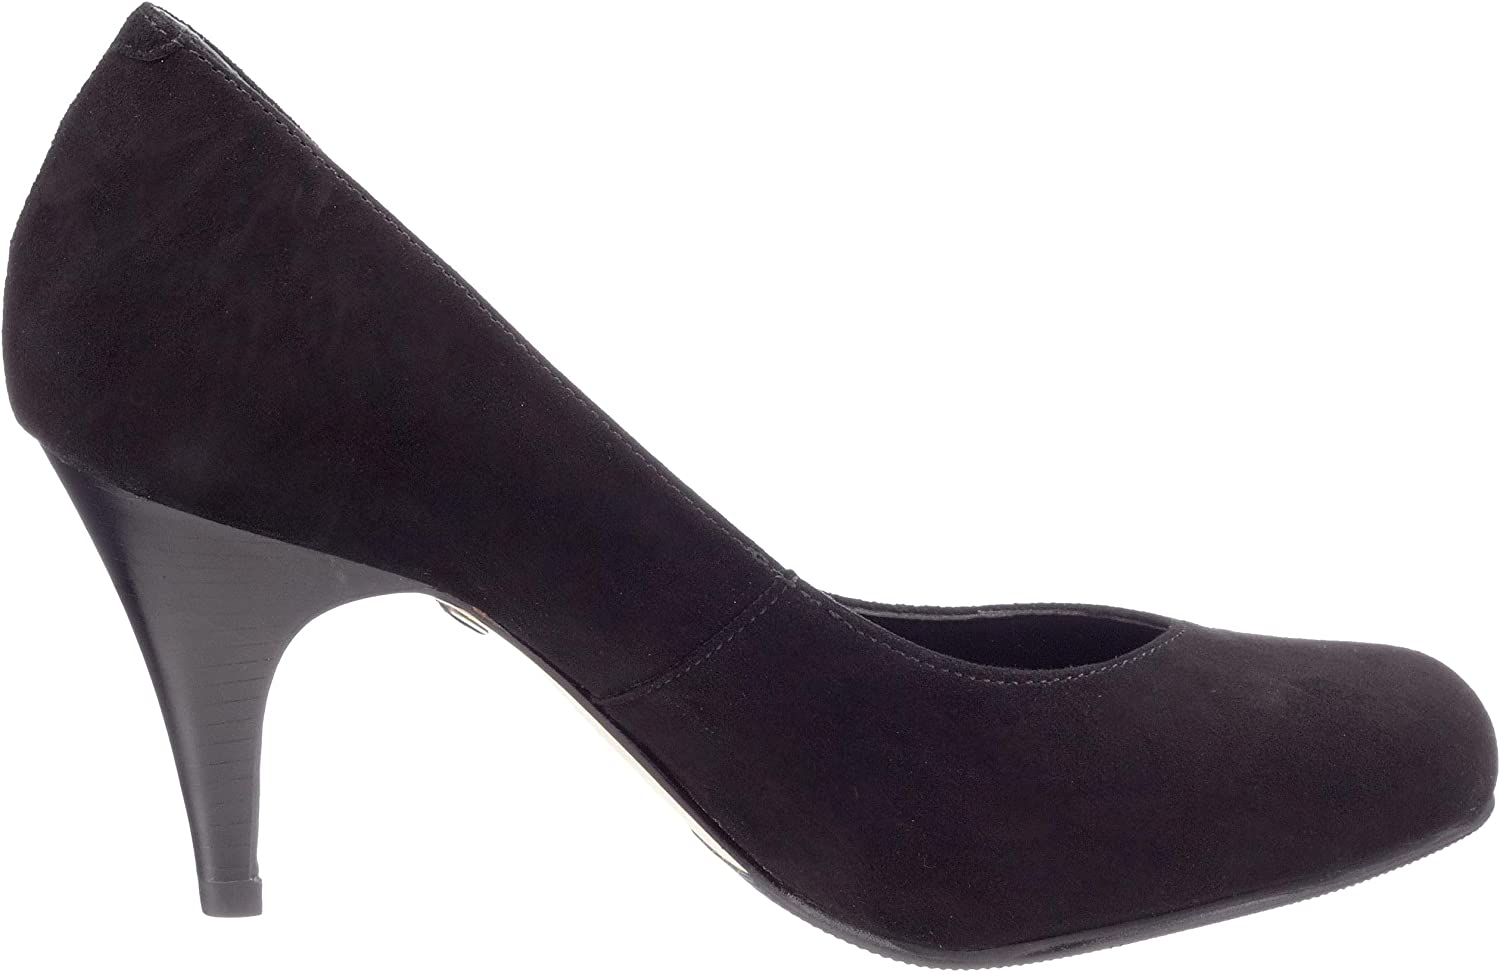 Buffalo London 9681 525 KID SUEDE 109911 Damen Pumps